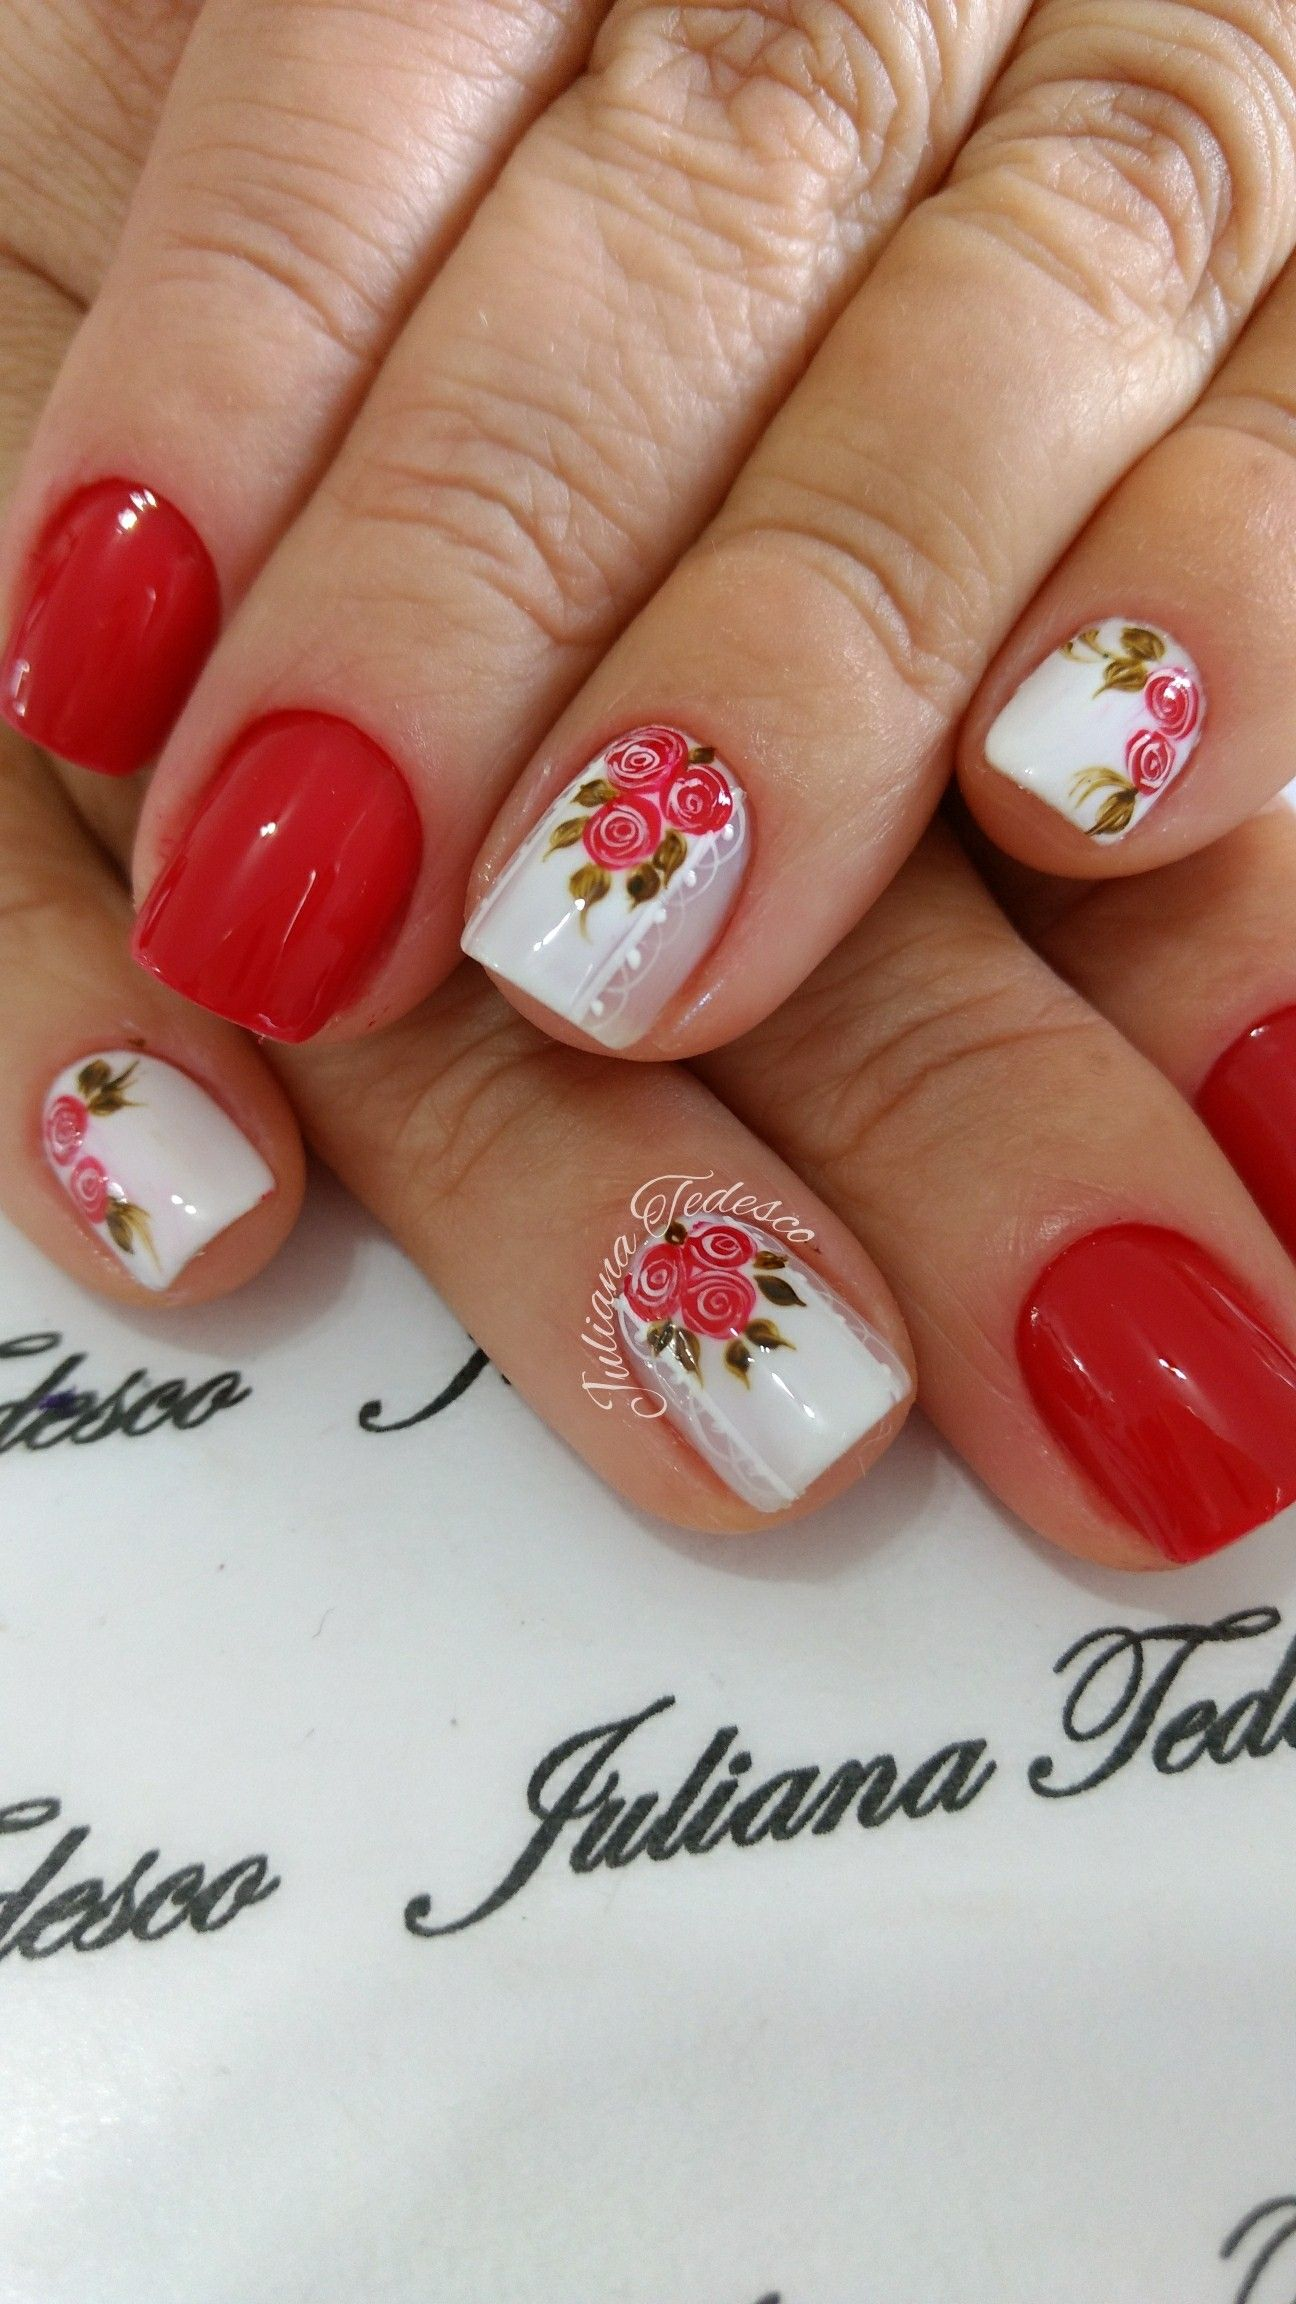 Pin by Kristin Mau-Quedding on Nailed it | Pinterest | Manicure ...